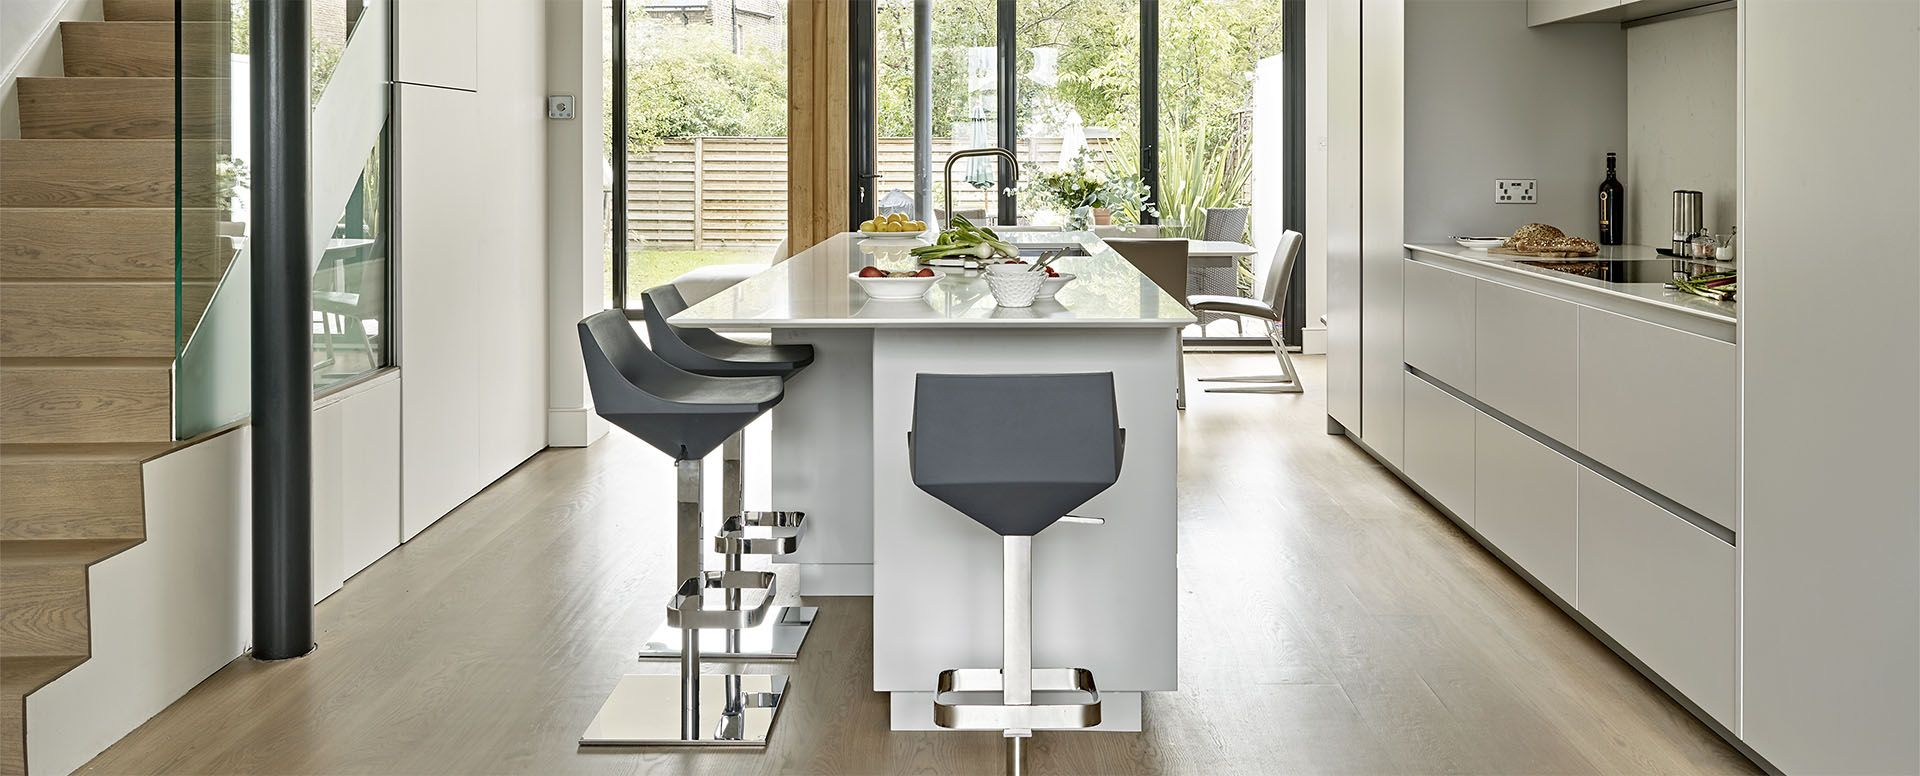 Modern handleless kitchen design with sleek light grey finish - Wimbledon